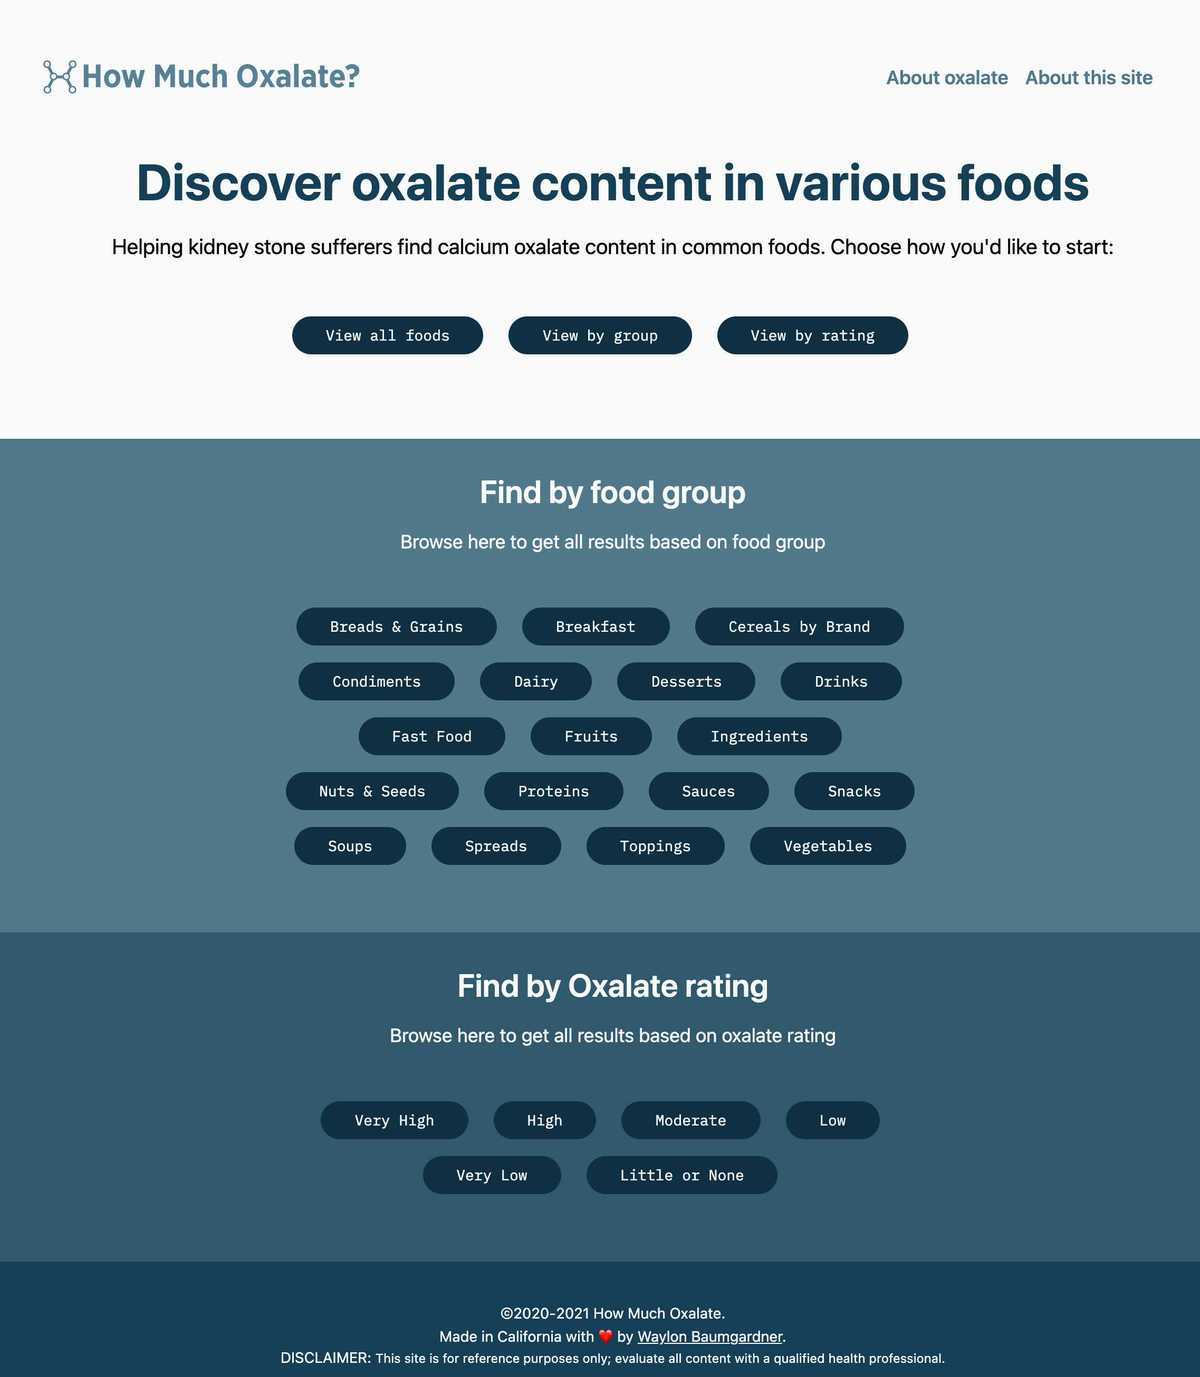 Screenshot of the How Much Oxalate website; white background with teal foreground colors and a grid of button options